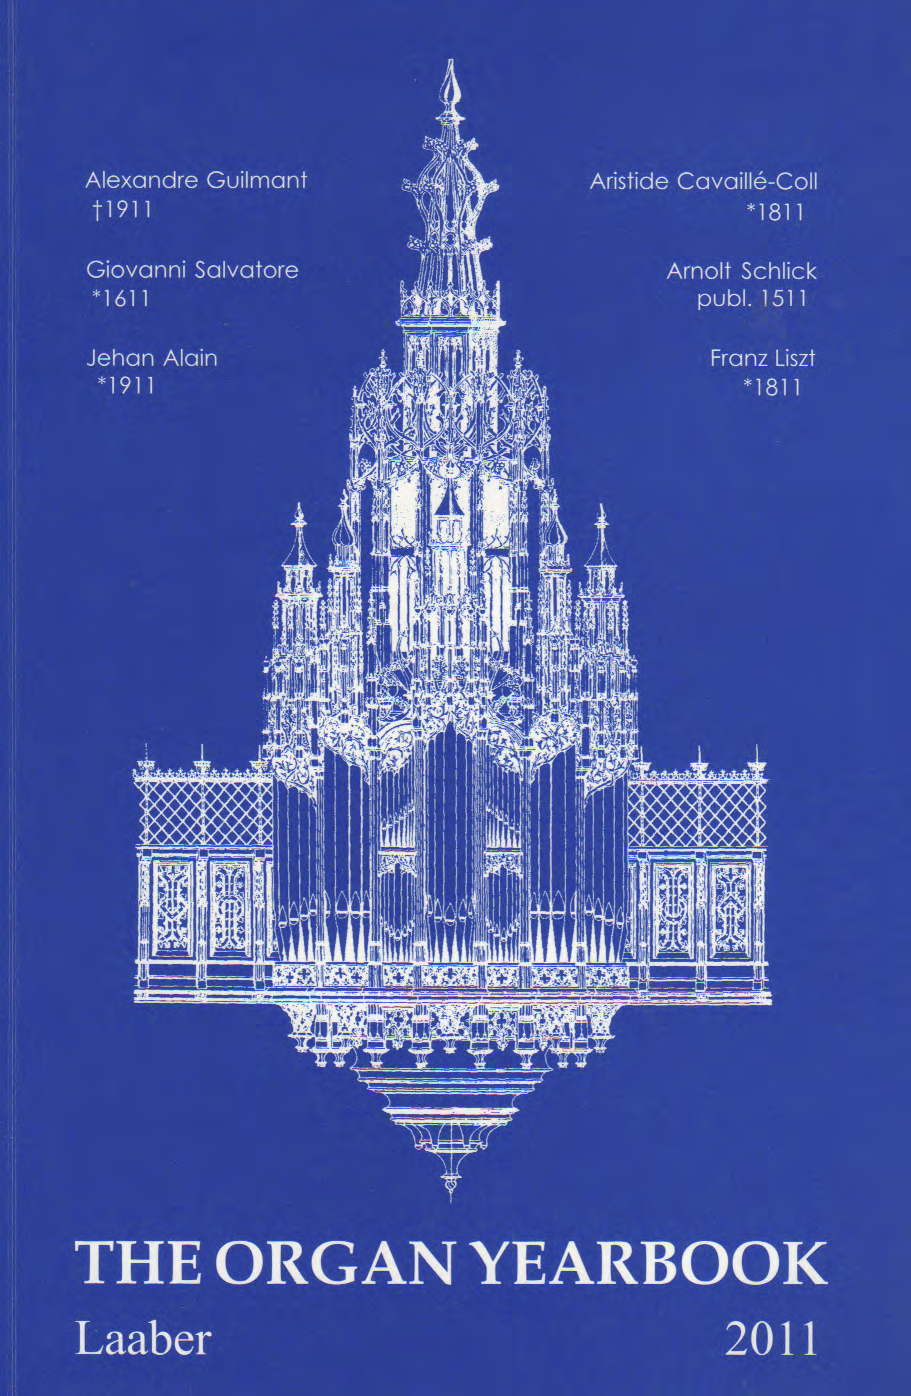 The Organ Yearbook 2011 (nr.40) / Emanuele Cardi, Giovanni Salvatore (16111688). On the 400th anniversary of his birth /https://www.goodreads.com/book/show/13080283-the-organ-yearbook-2011